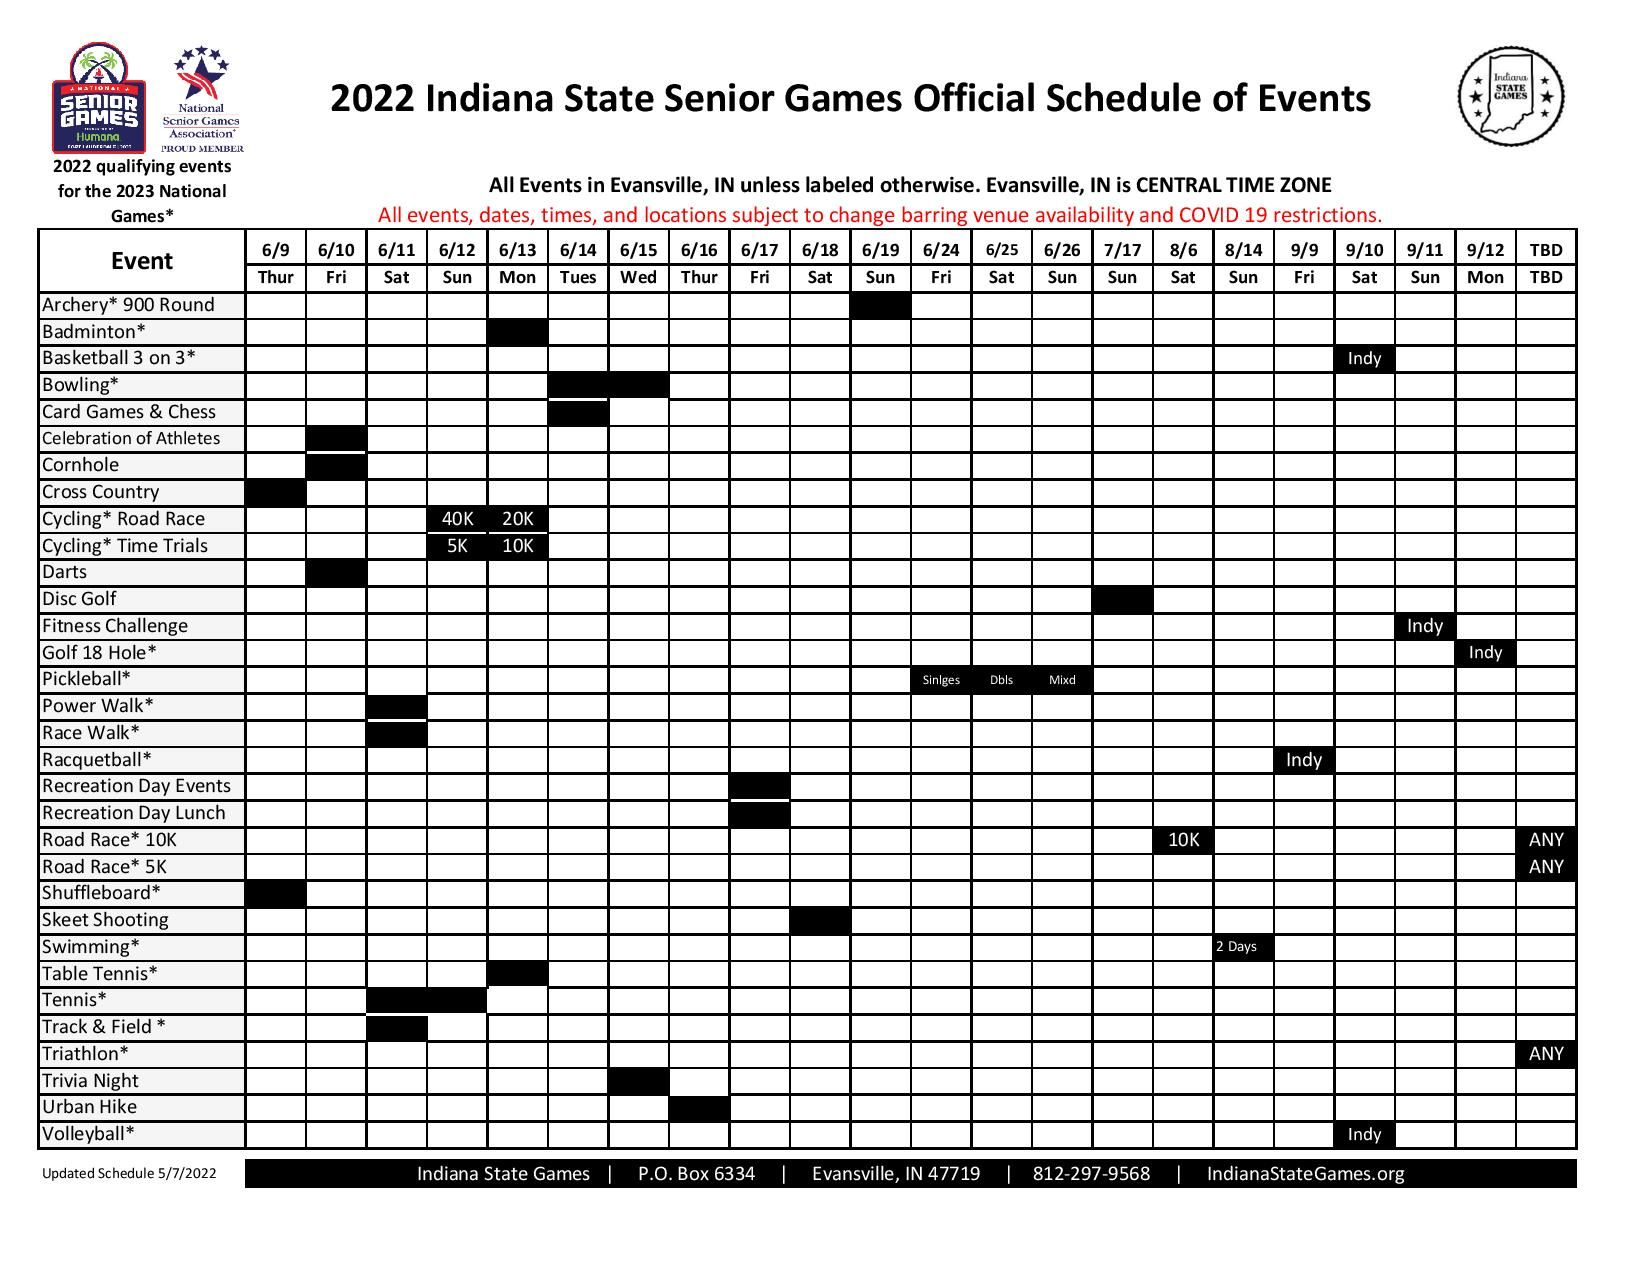 2021 Schedule of Events